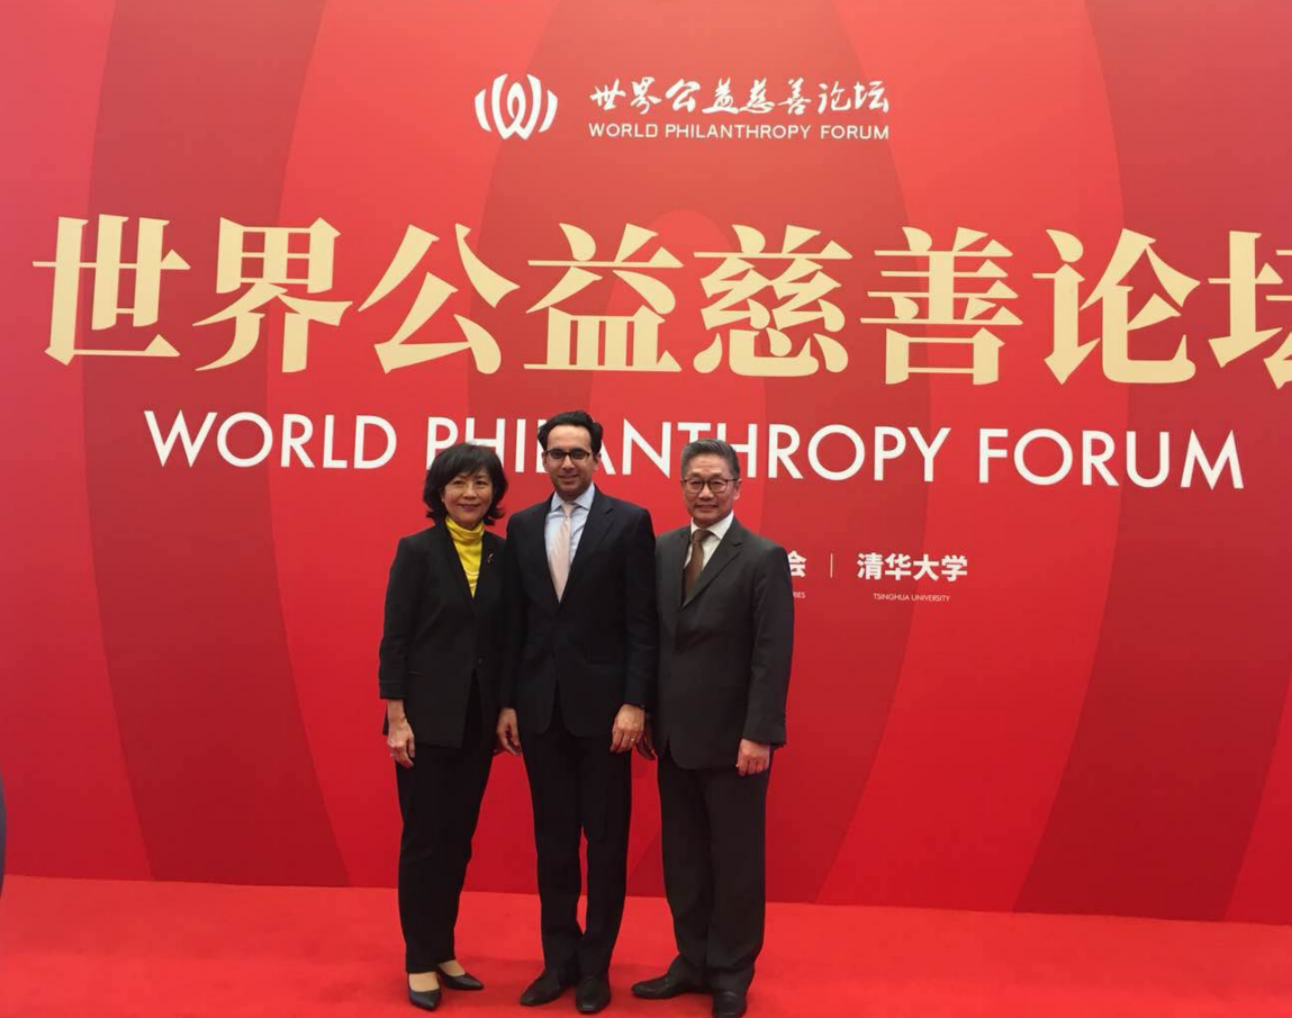 Left-to-right: JA Asia Pacific board member   Alice Chou, Asheesh Advani, and Paul Chou (Founder and Board Chair, JA China) at Great Hall of the People in Tiananmen Square, site of the World Philanthropy Forum meeting.